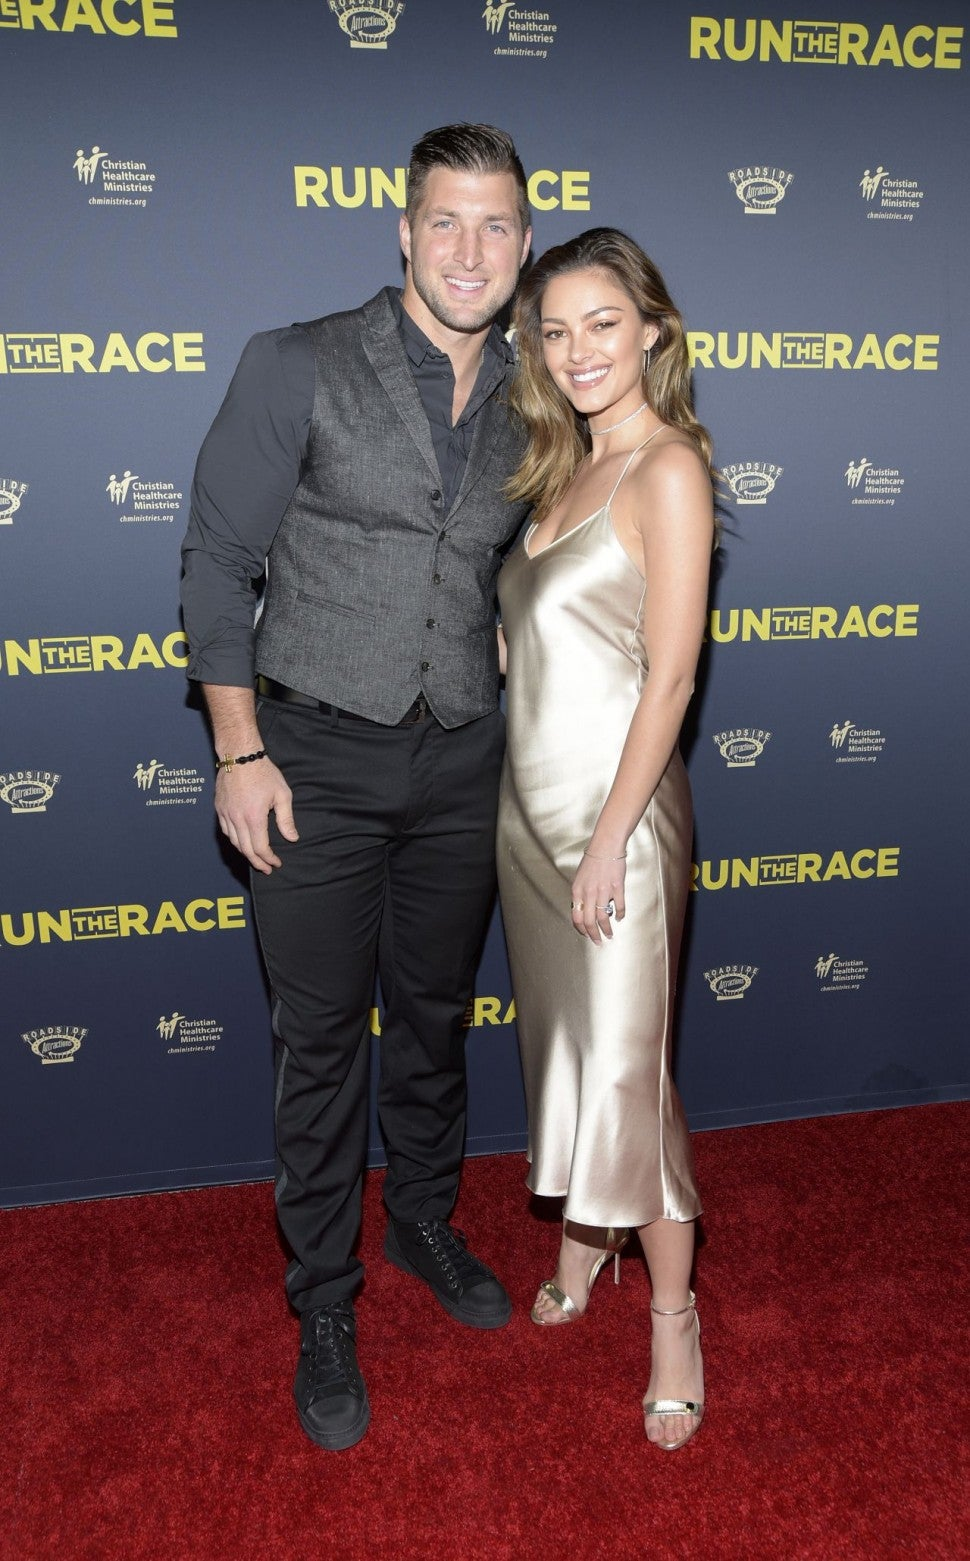 Tim Tebow and Demi-Leigh Nel-Peters at Run the Race